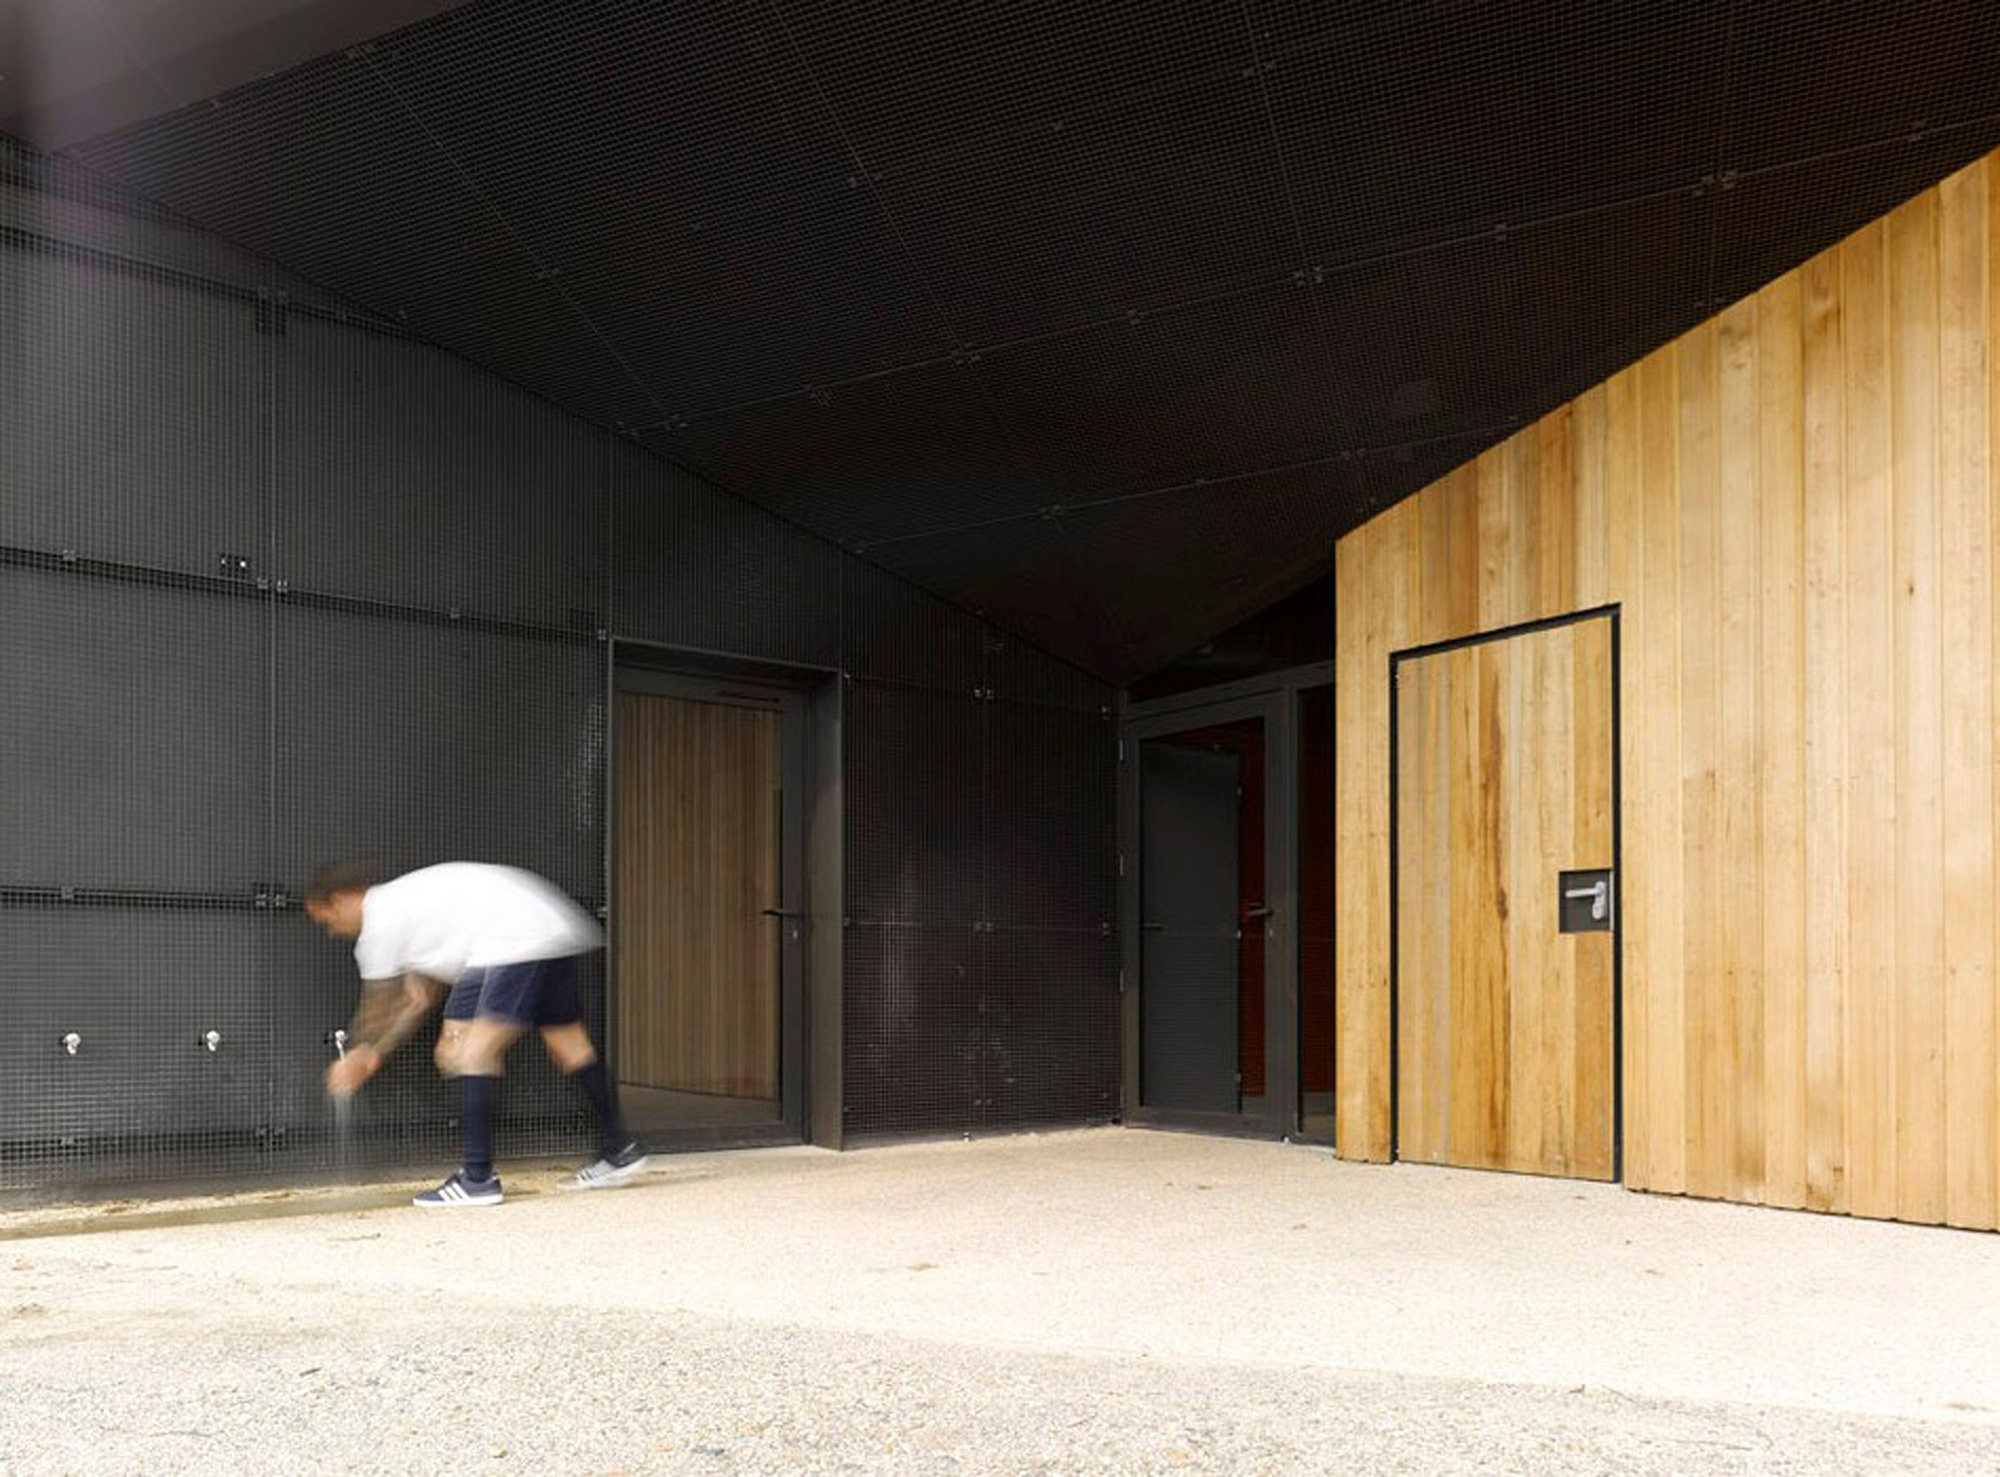 Hidden-Locker-Rooms-MU-Architecture-Ateliers-Les-Particules-8.jpg